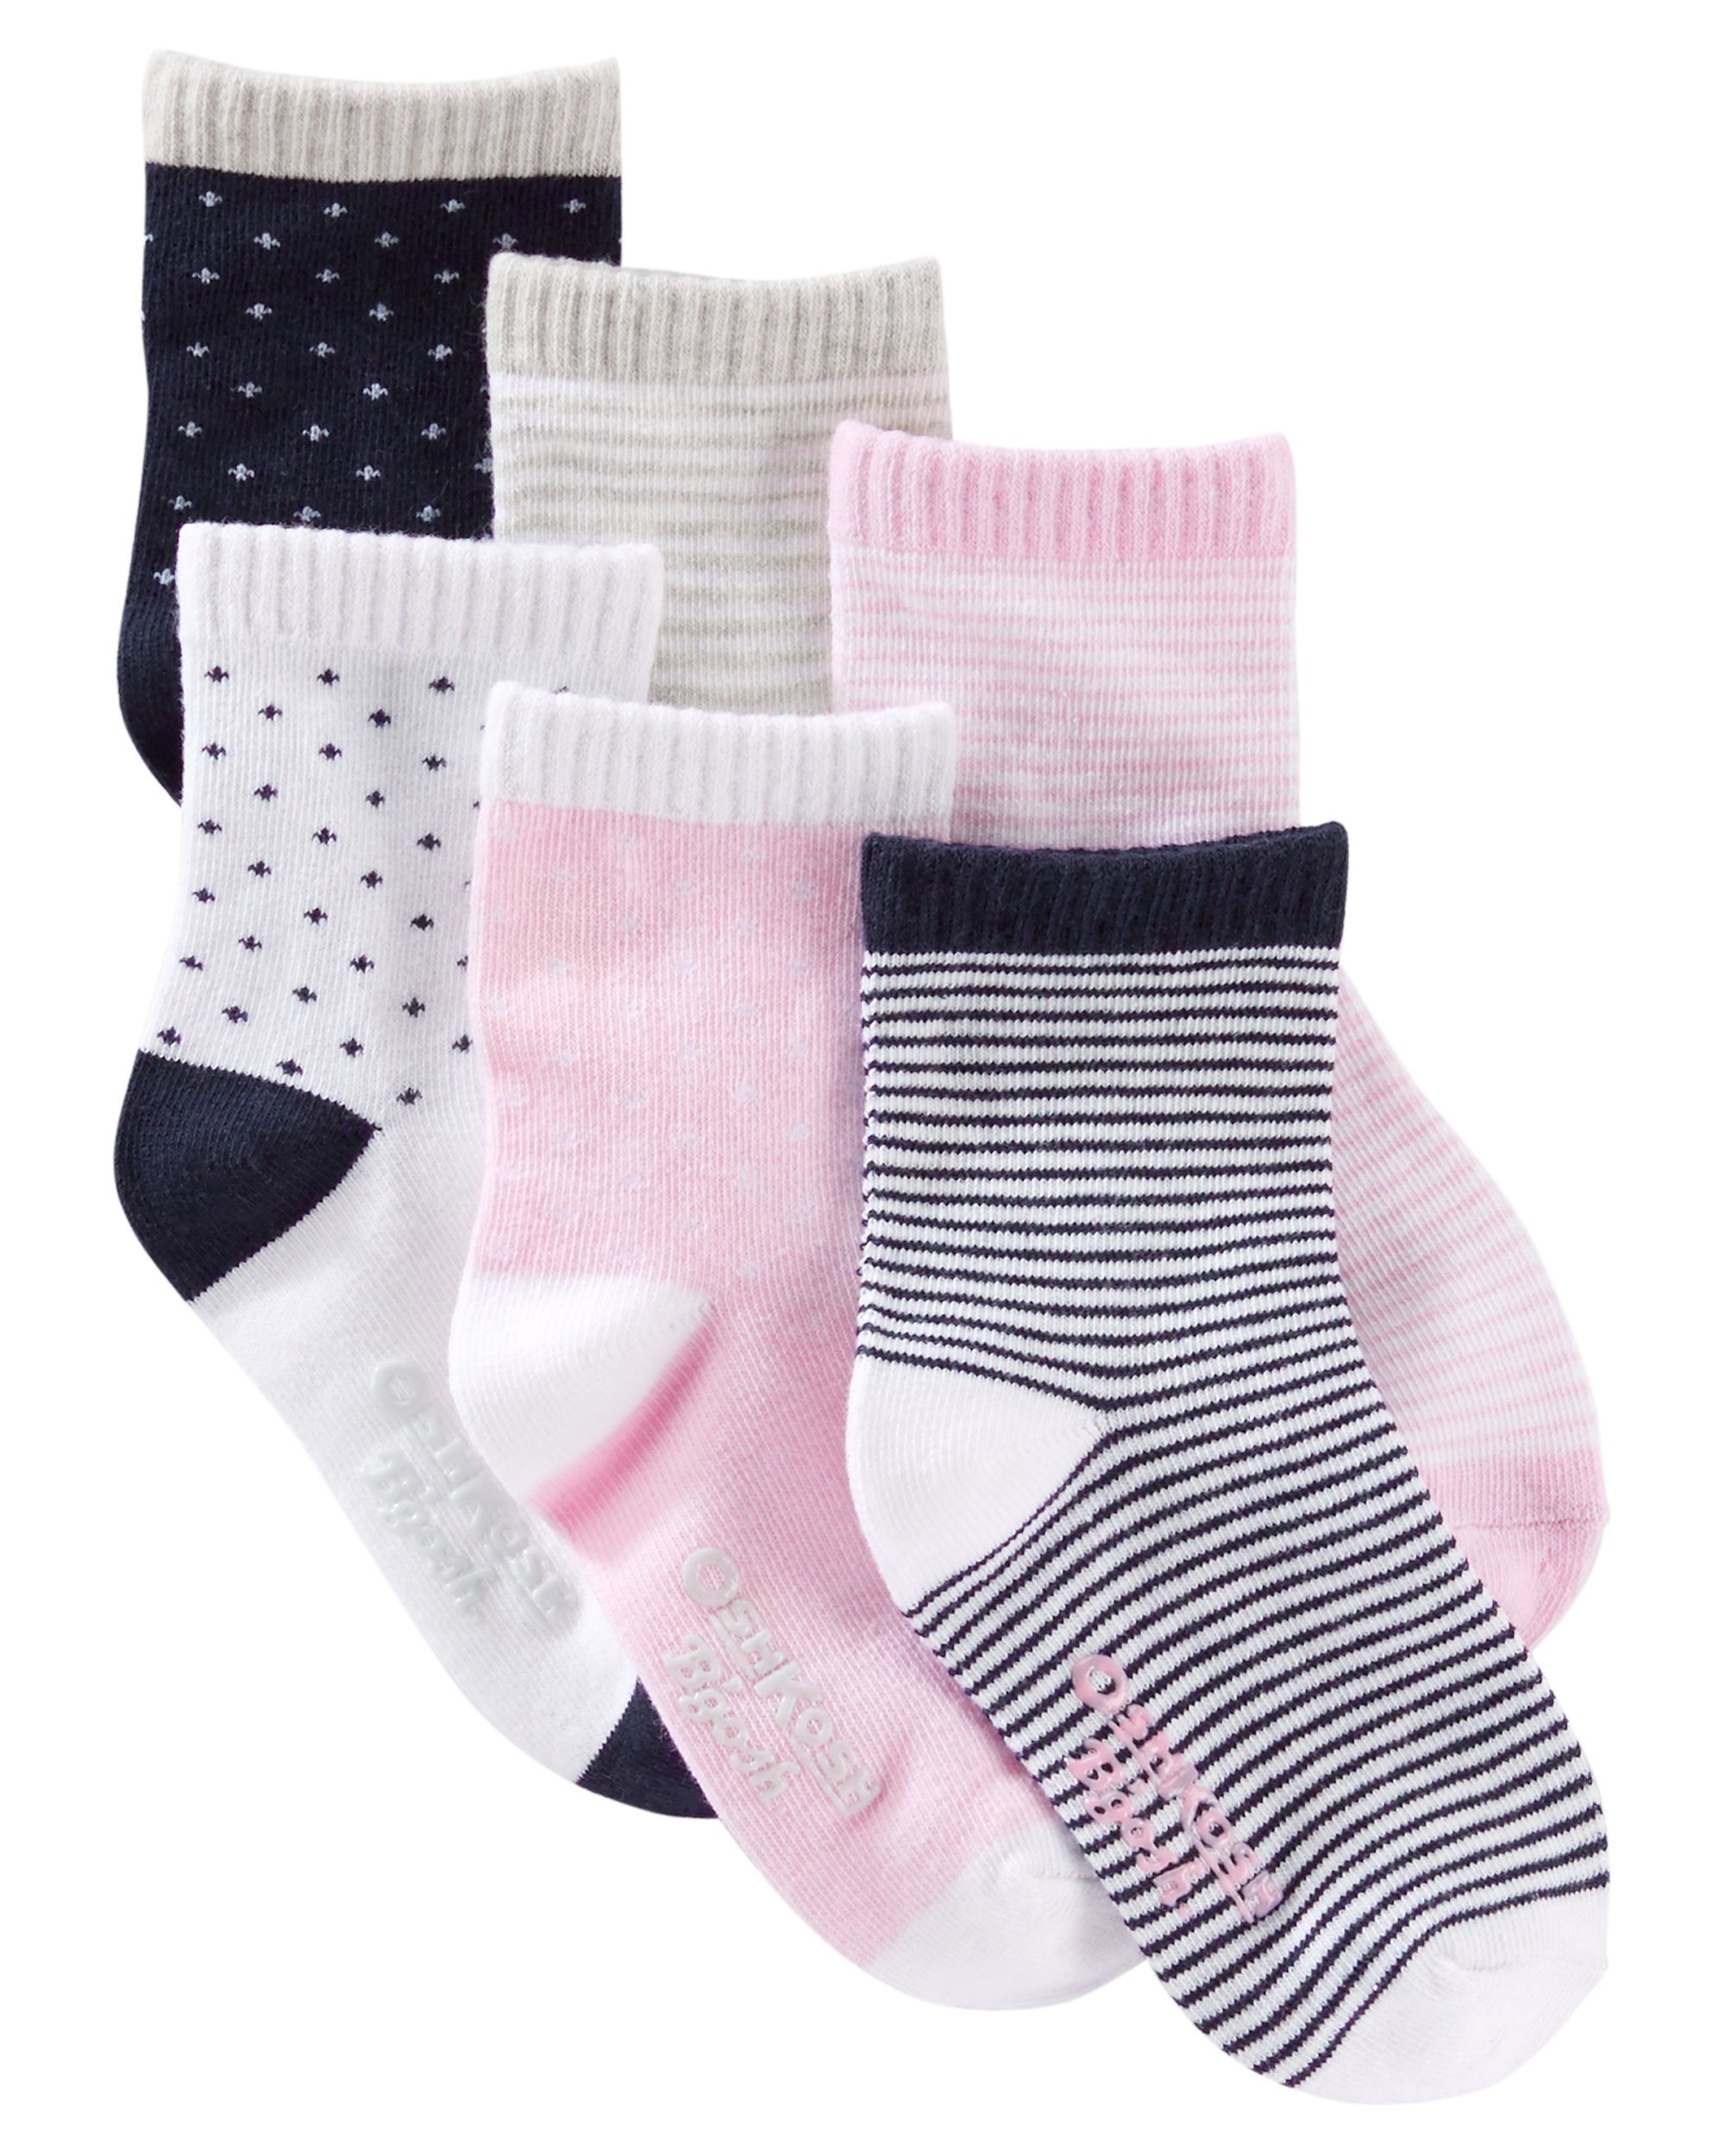 dab6a6897891 6-Pack Patterned Crew Socks